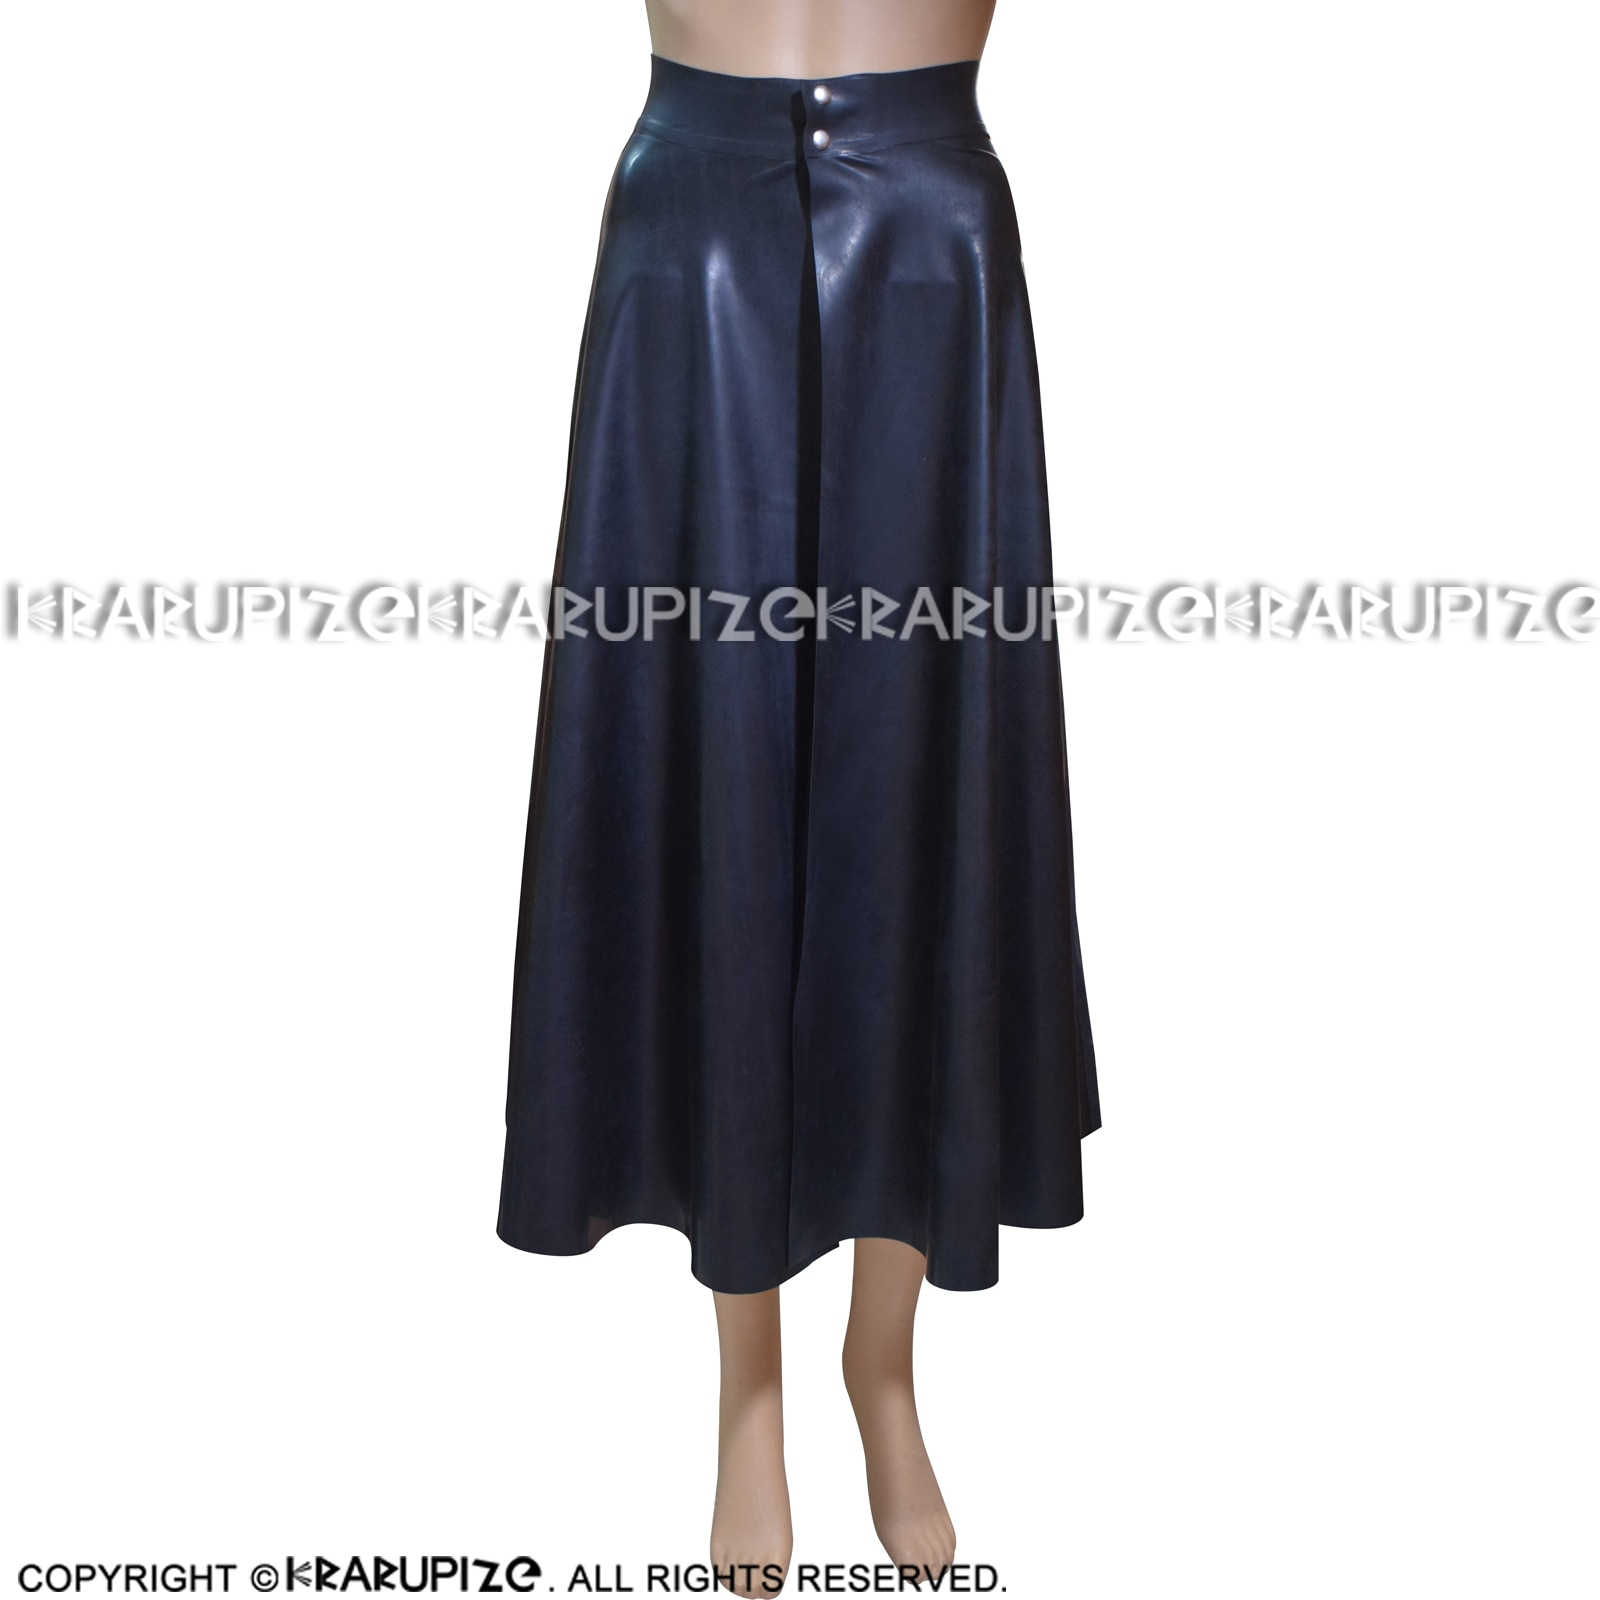 Black Sexy Mini Latex Pleated Skirt With Front Open And Buttons Short Rubber Bottoms Uniform DQ-0007